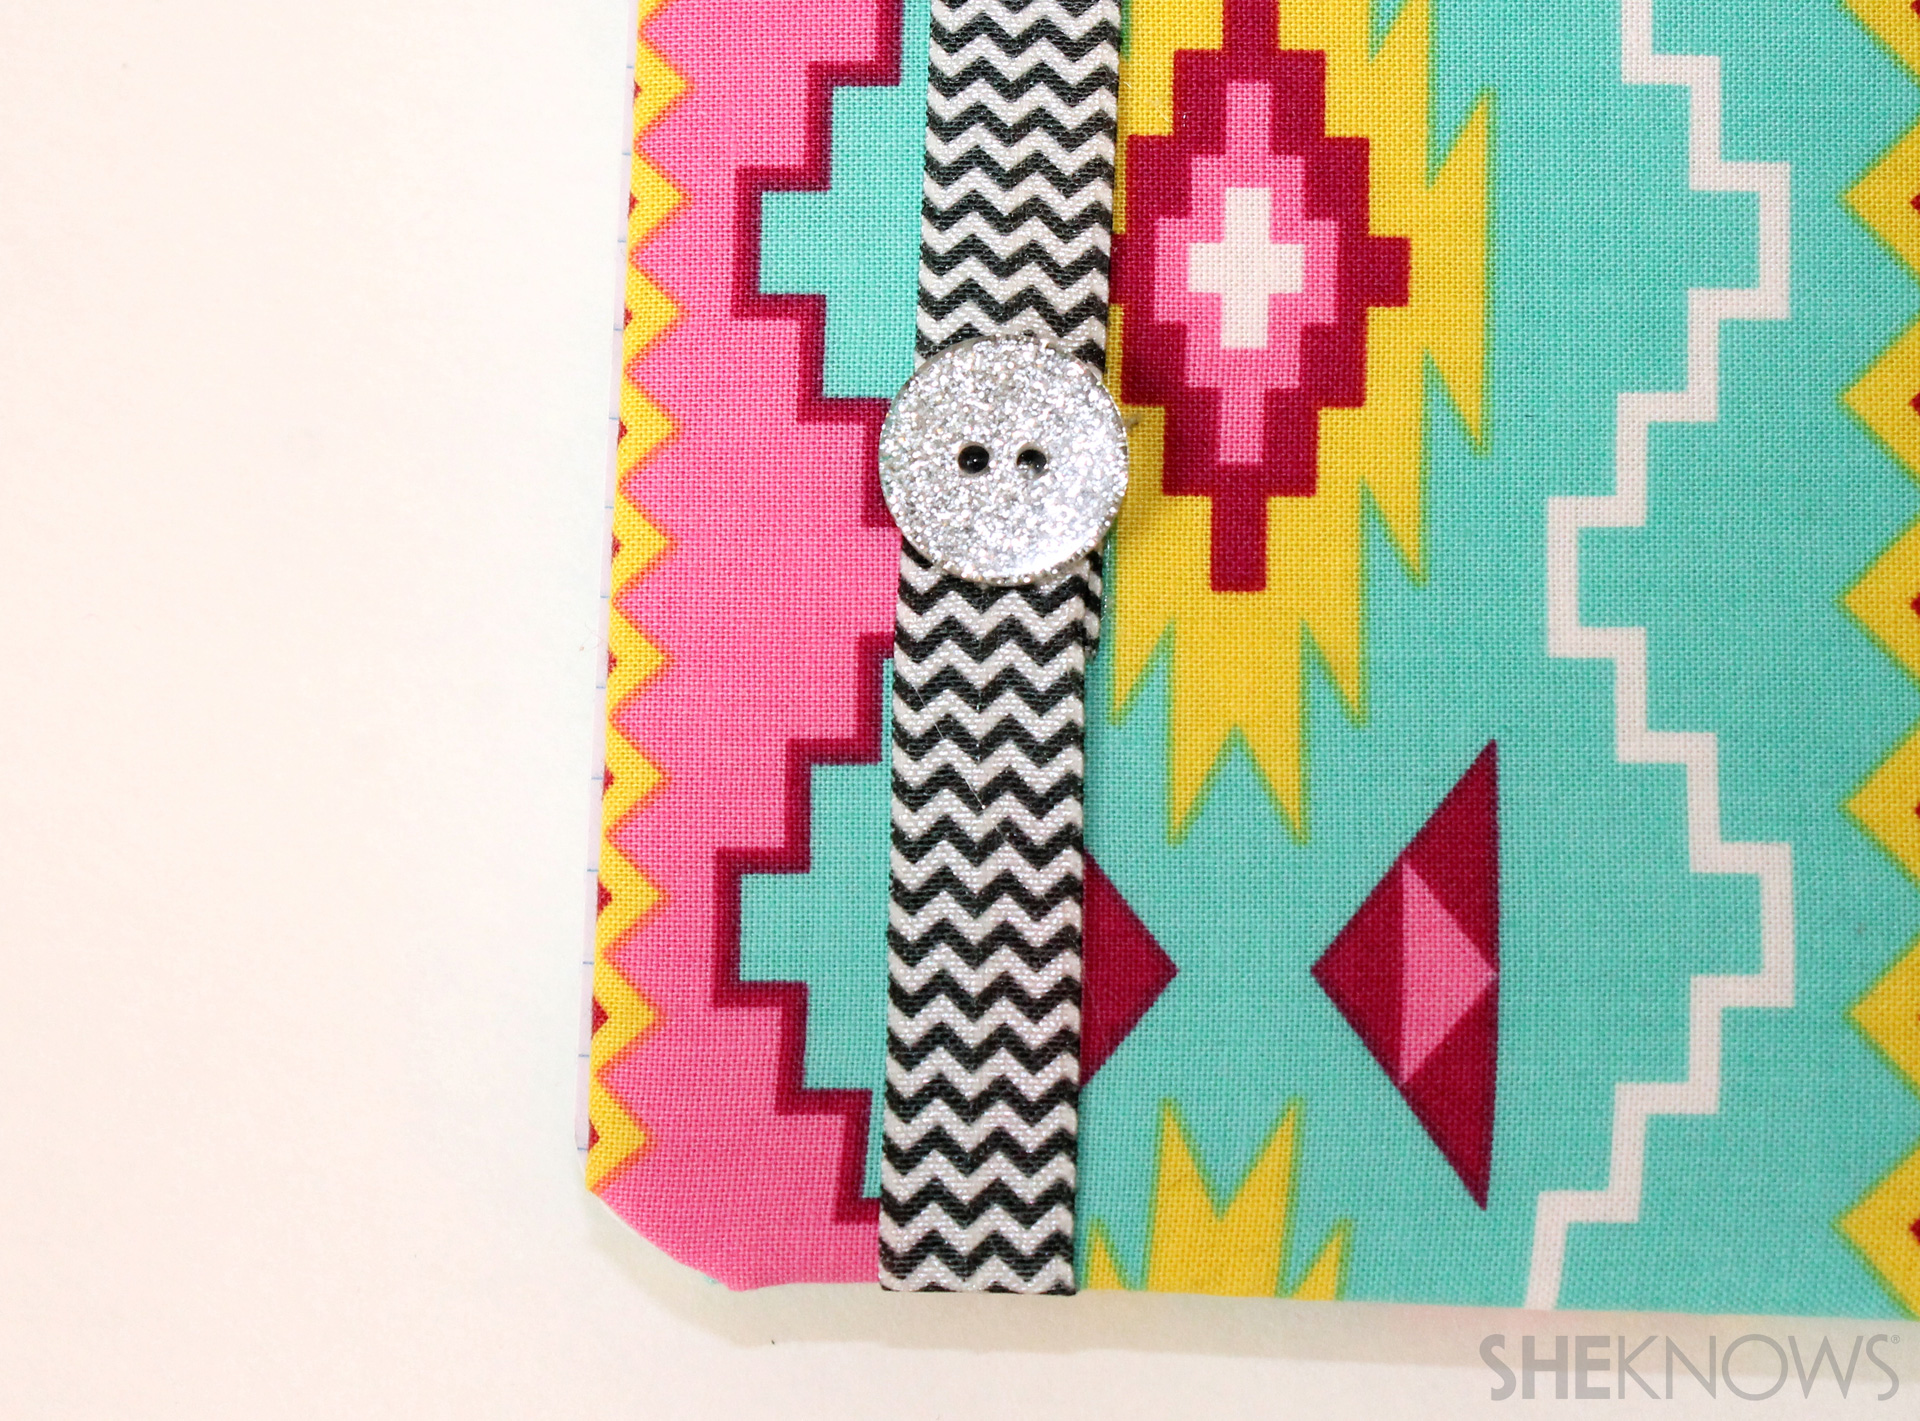 fabric covered composition book: Loop the decorative elastic around the book